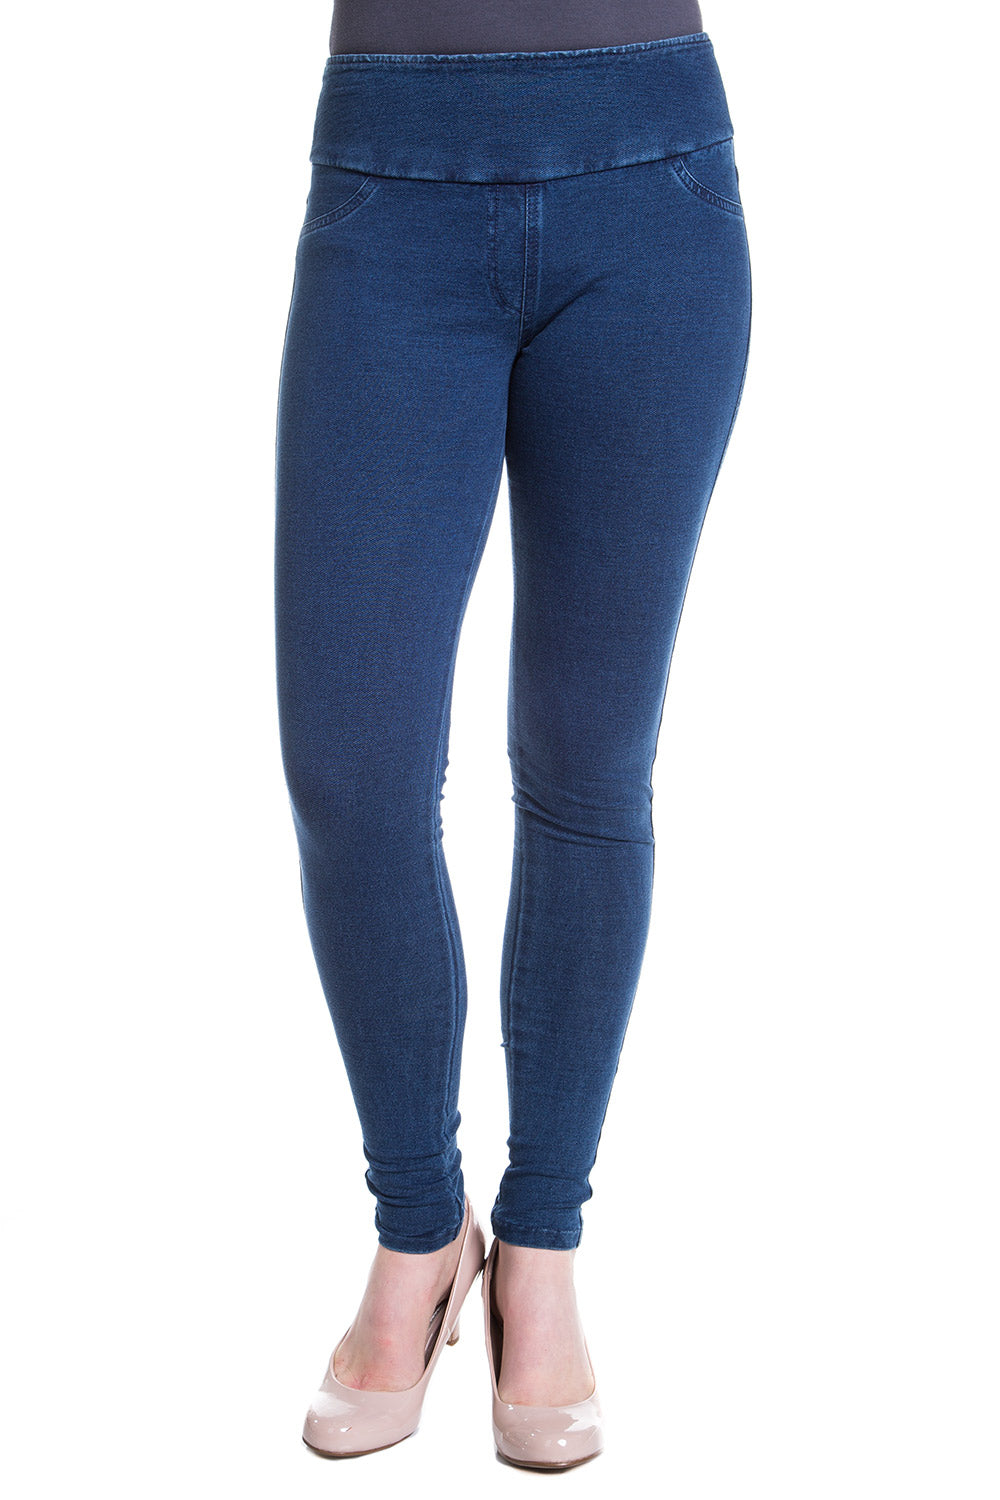 Type 2 Slimming Stretchy Pants